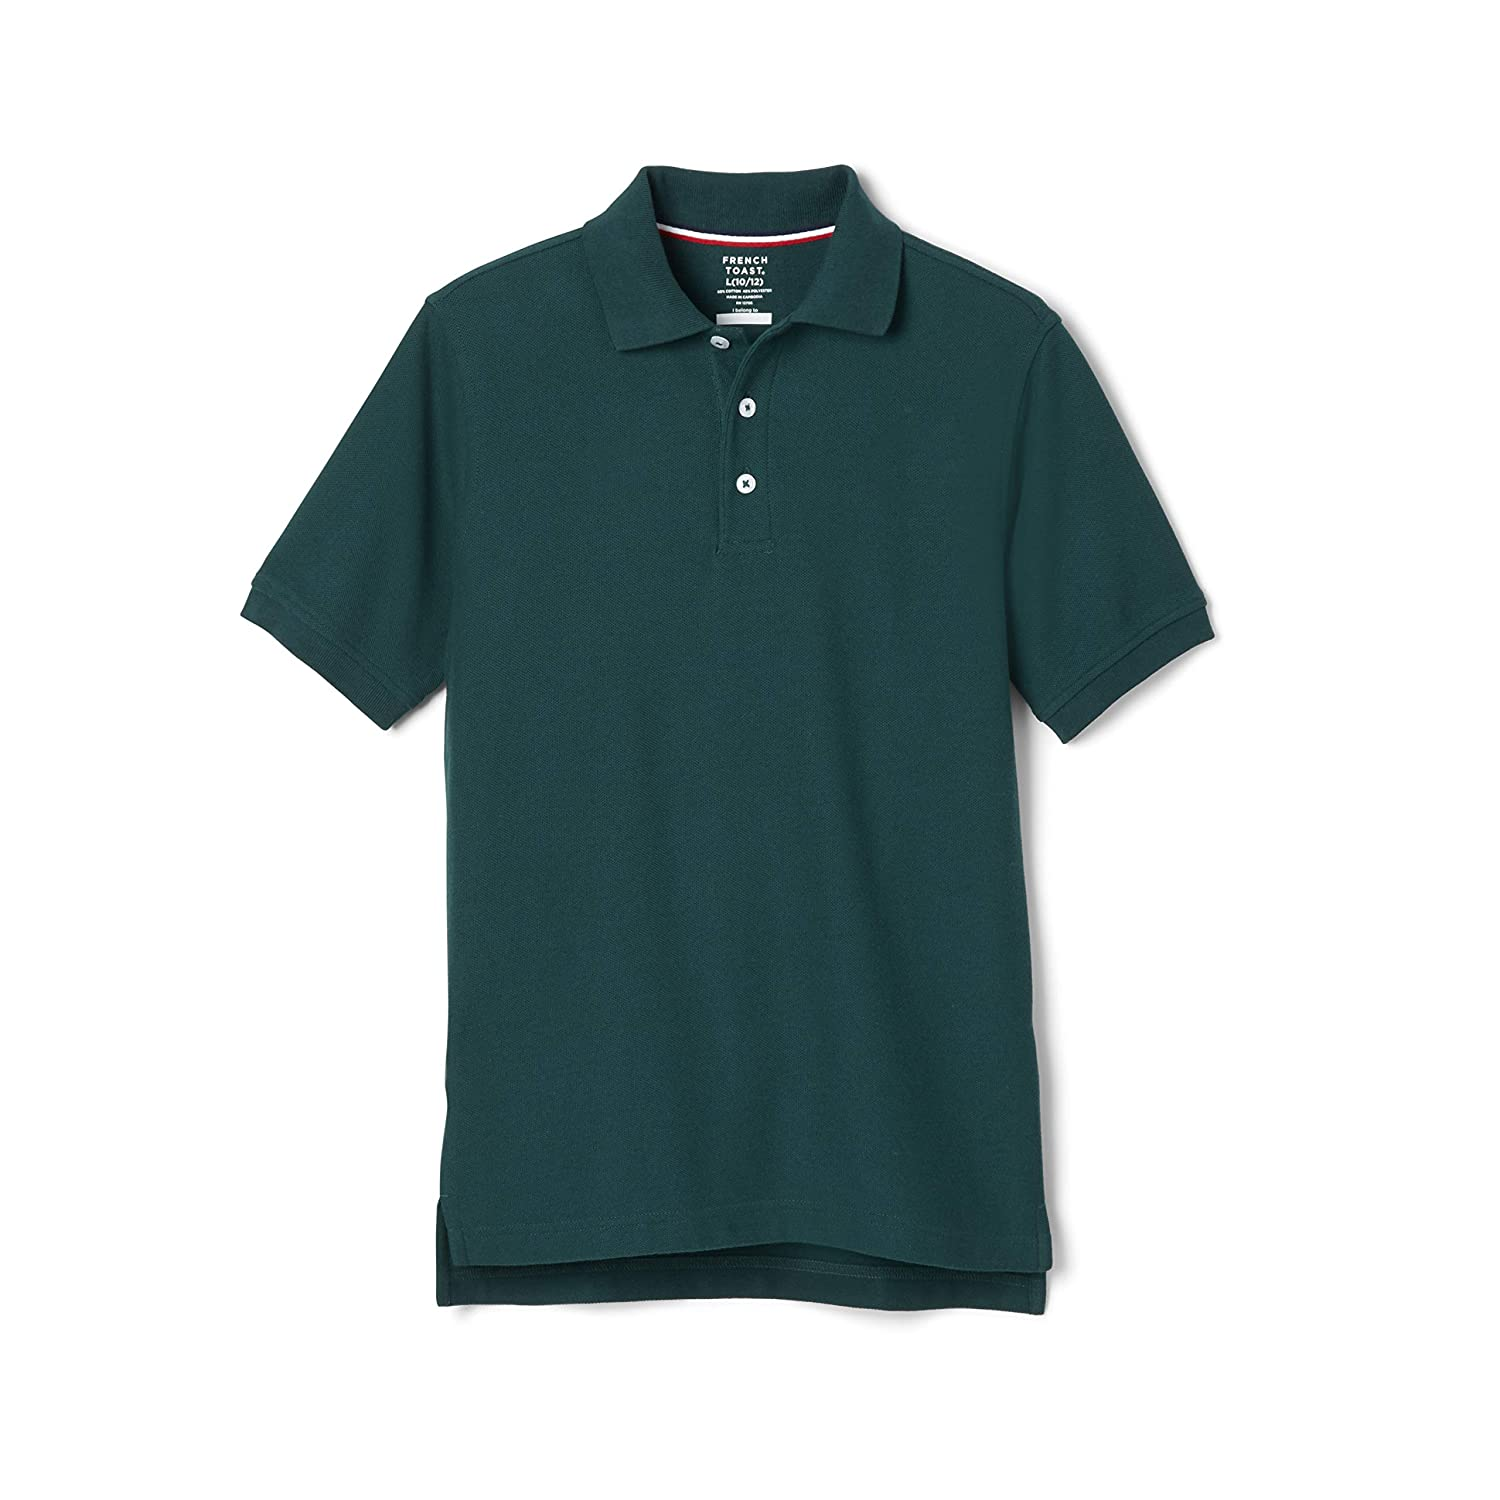 French Toast Unisex S//S Pique Polo